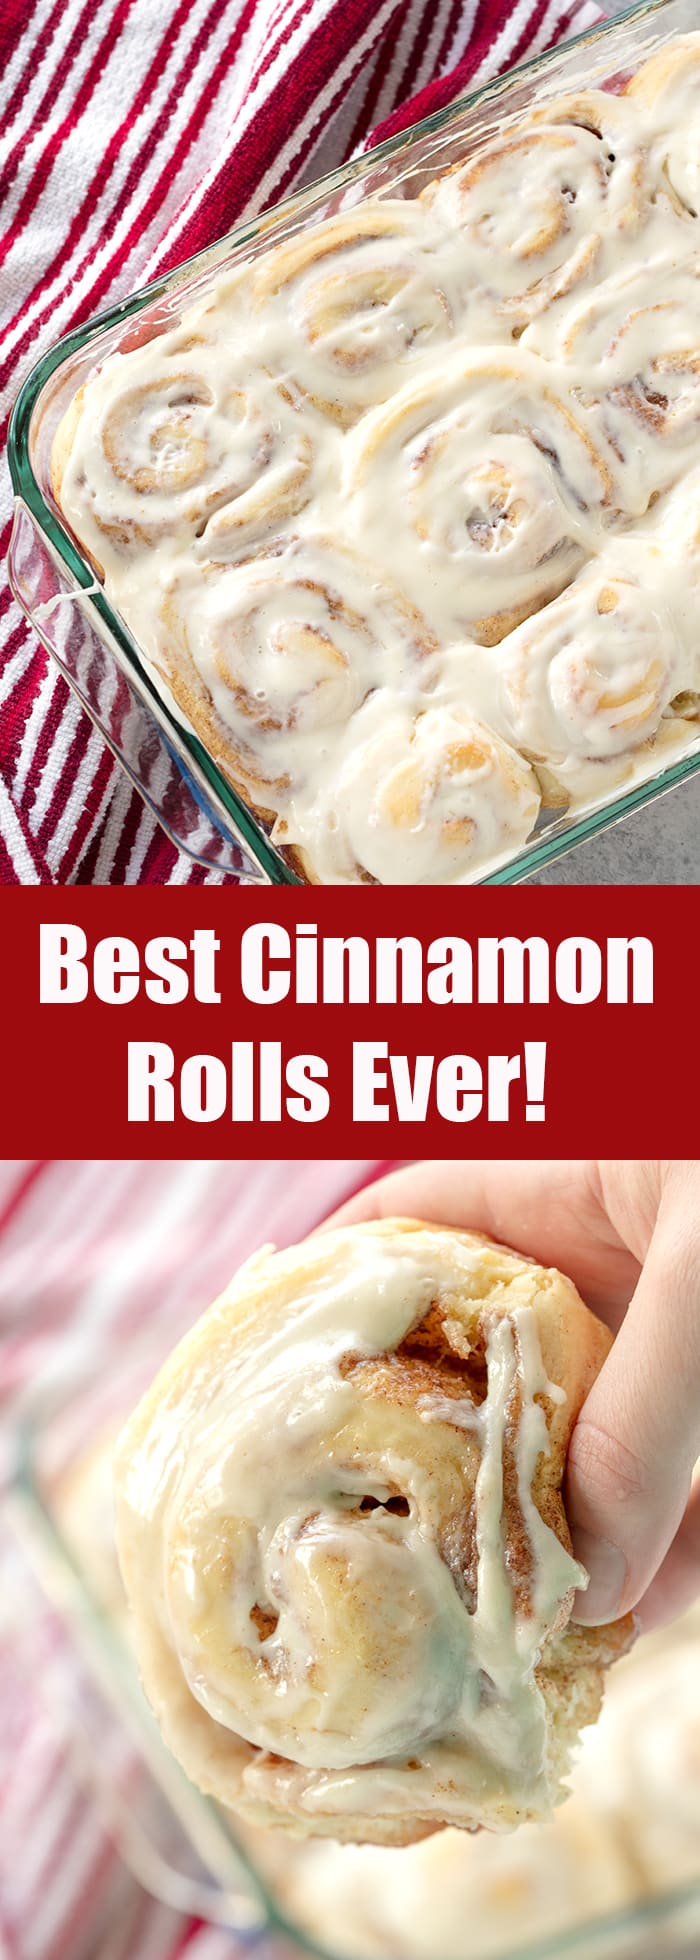 11 Cinnamon Roll Recipes That Make Getting Out of Bed Worth It forecasting